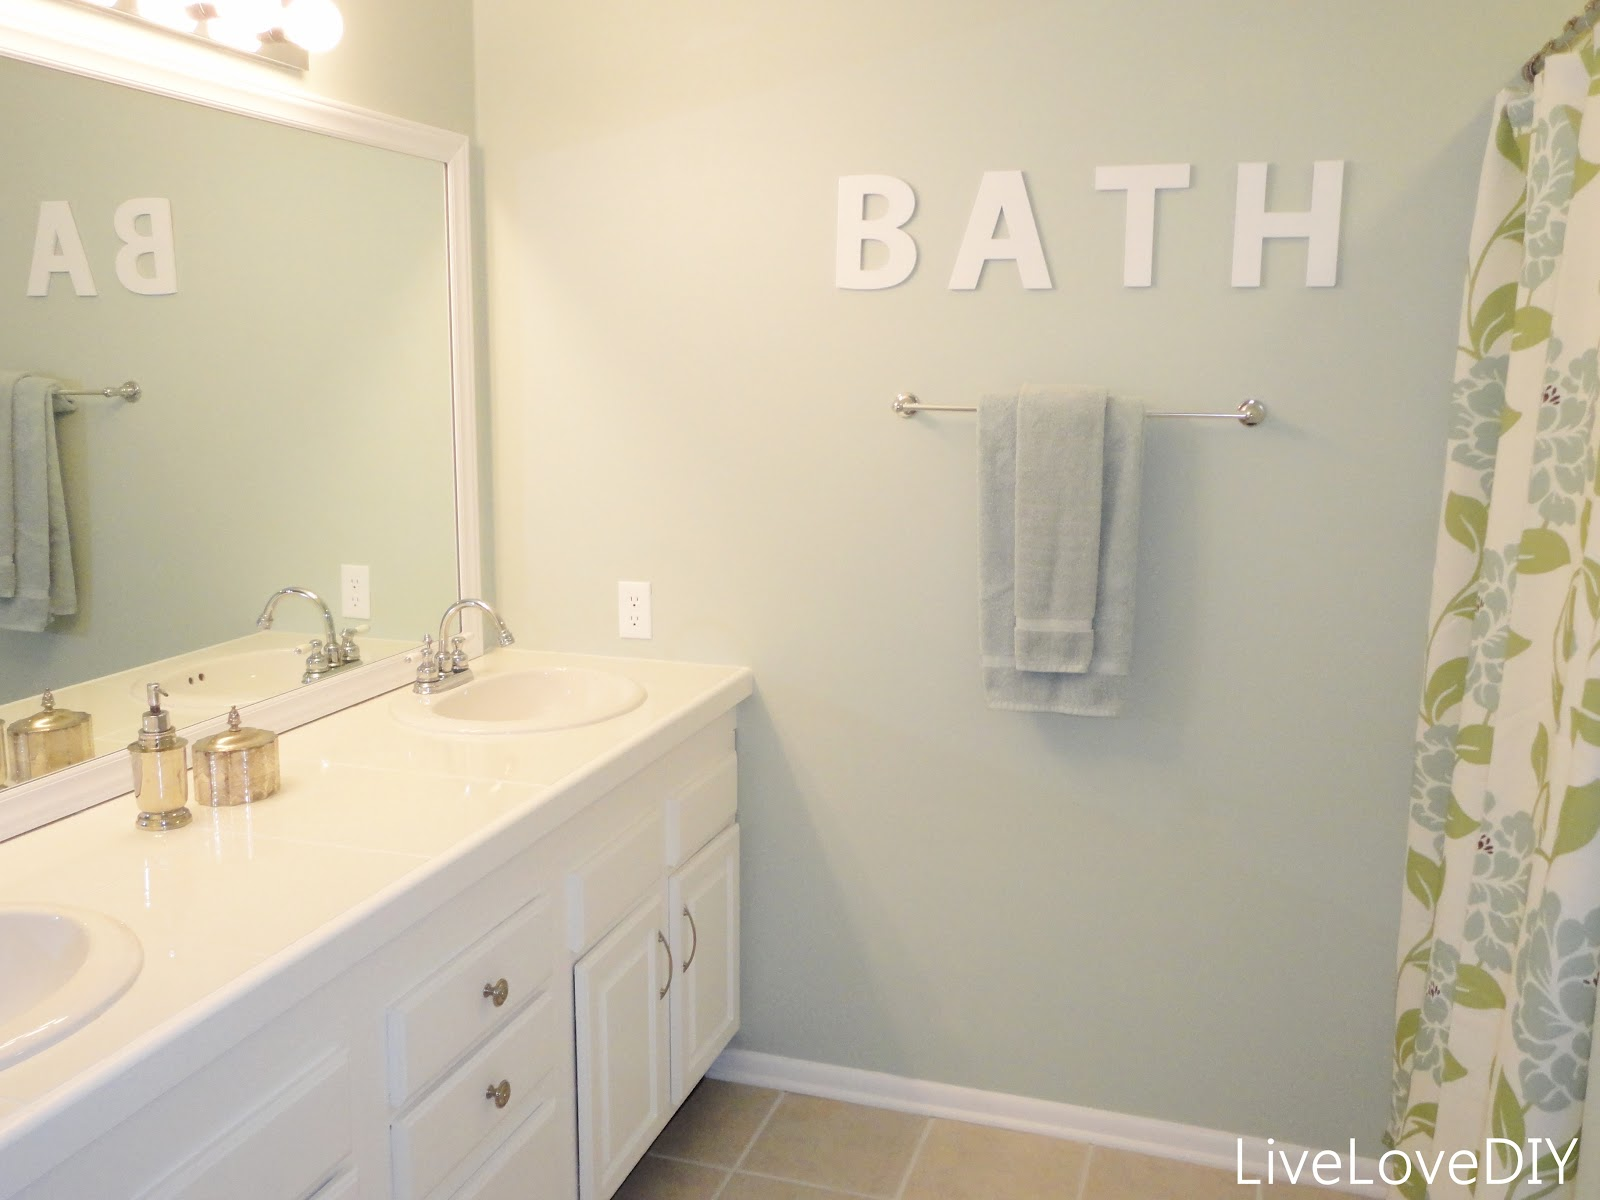 Livelovediy easy diy ideas for updating your bathroom easy diy ideas for updating older bathrooms so many great ideas including how to paint dailygadgetfo Image collections